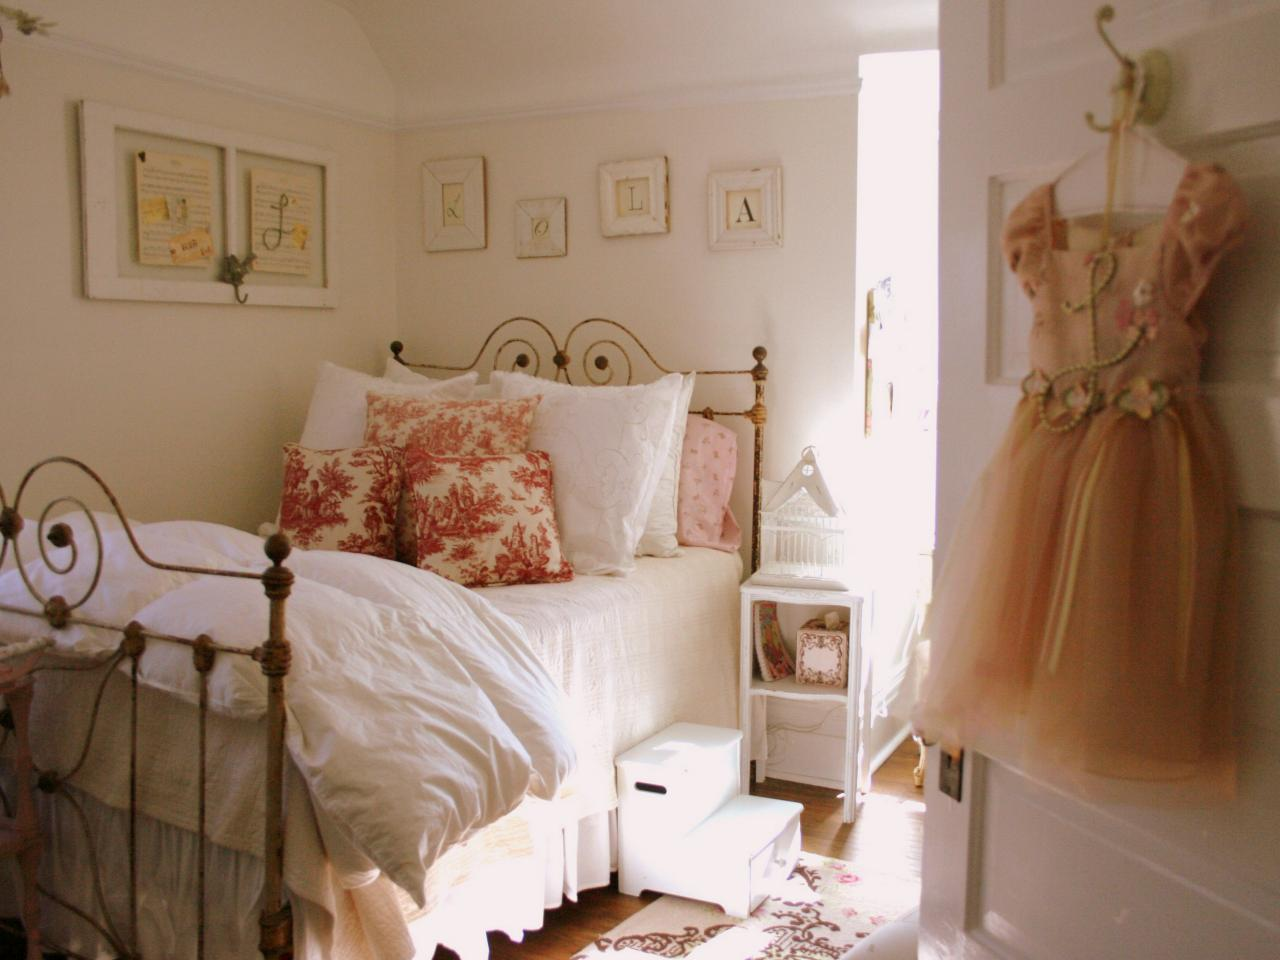 Alluring Bed With Floral Pillow For Little Girl Room Ideas